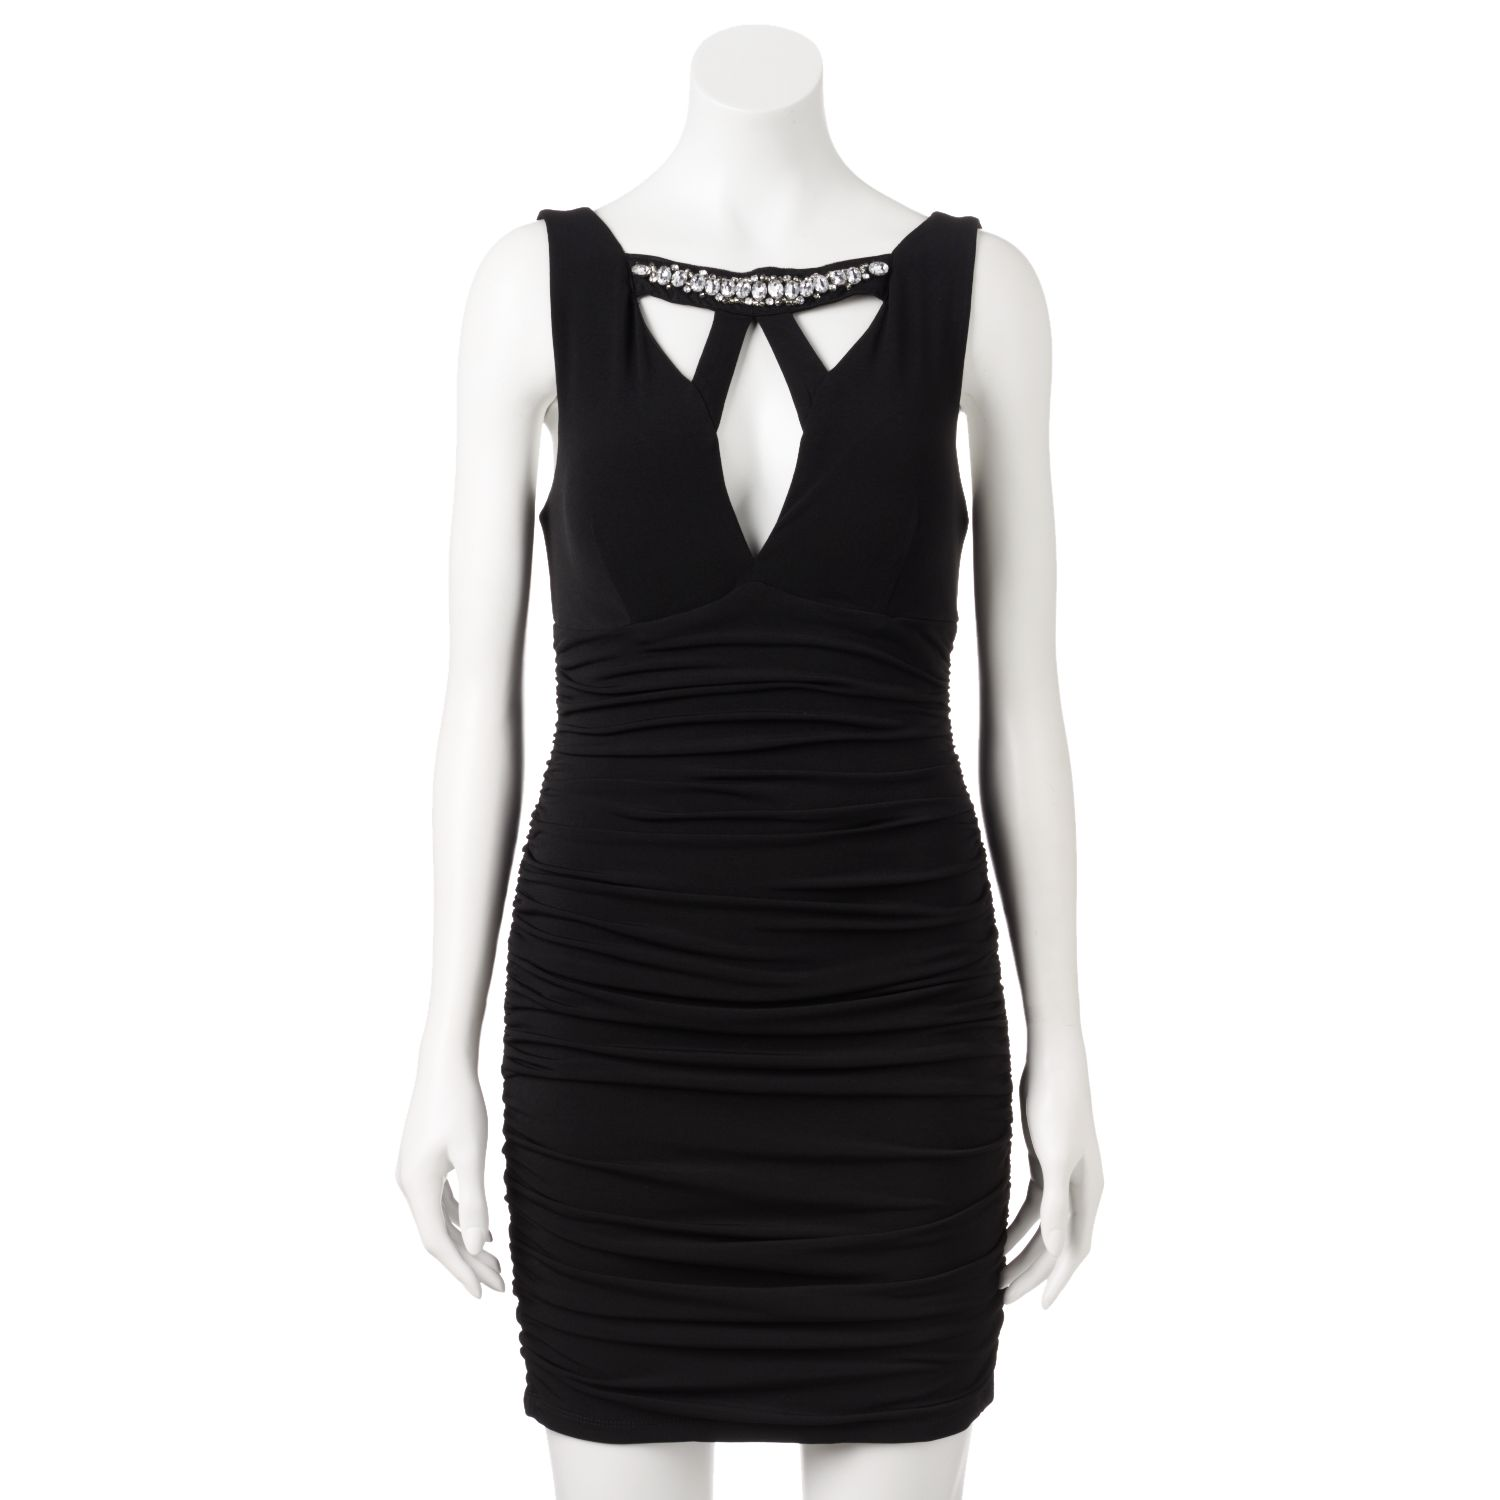 e3634357a LIST PRICE Trixxi Ruched Cage Bodycon Dress - Juniors - pskkeedress